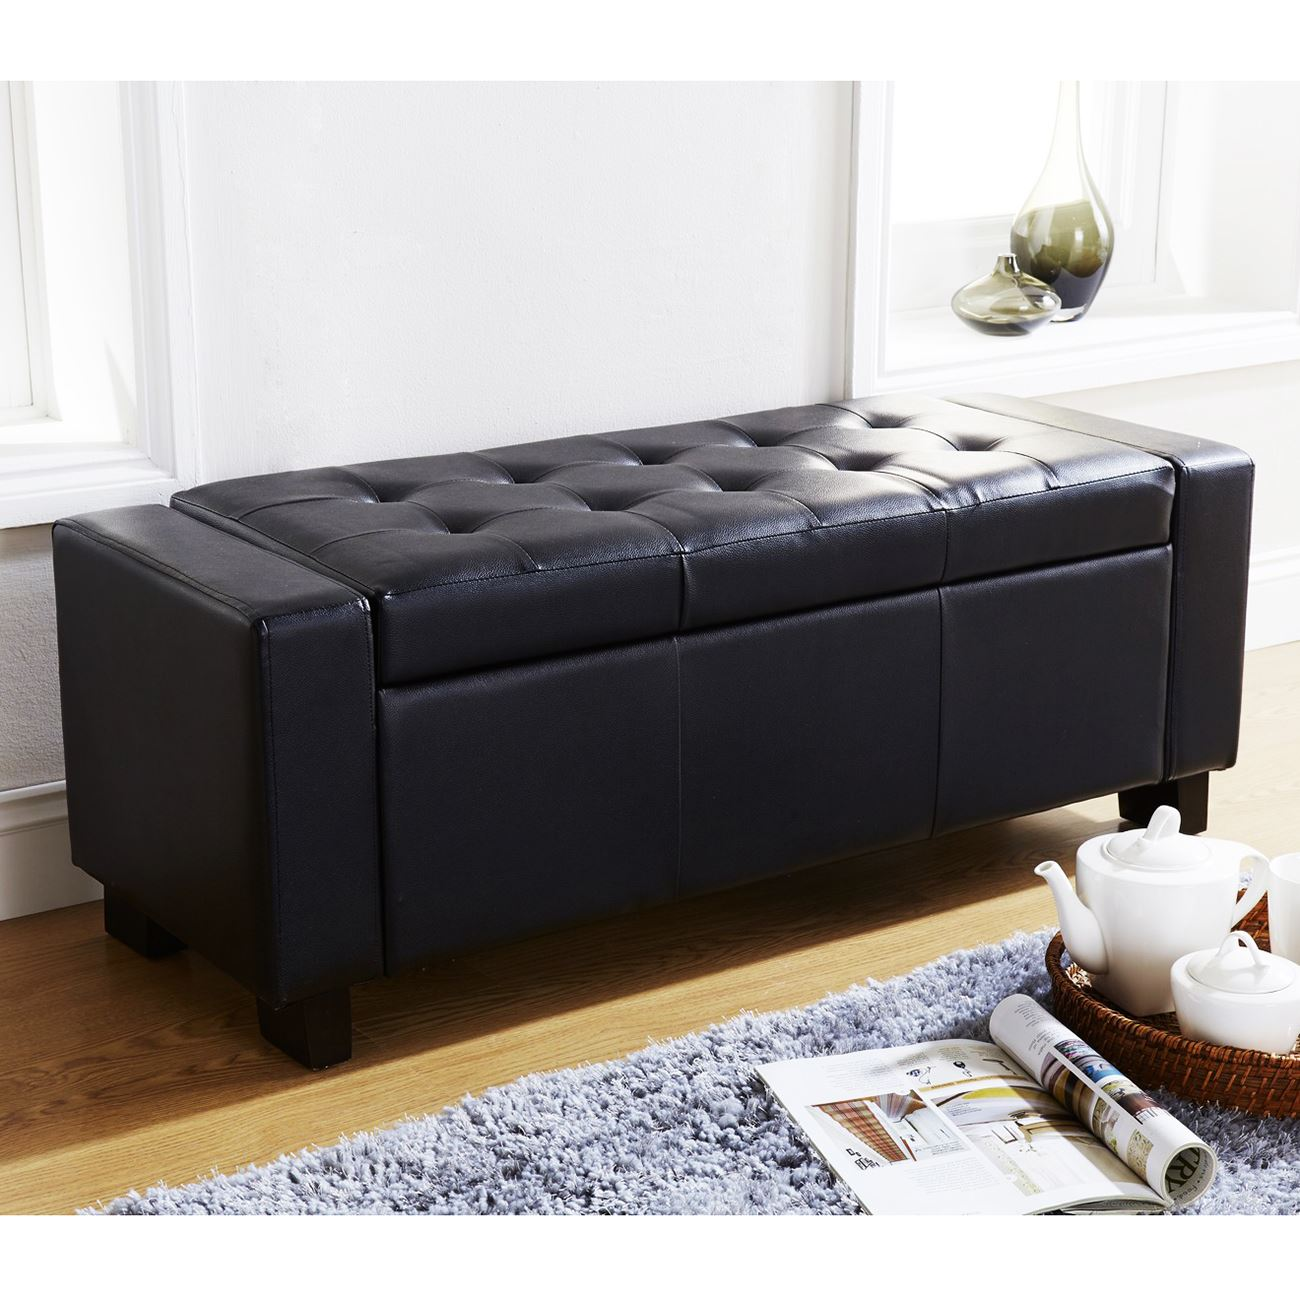 Verona Ottoman Blanket Box Storage Bench Faux Leather Foot Stool Seat Black Ebay